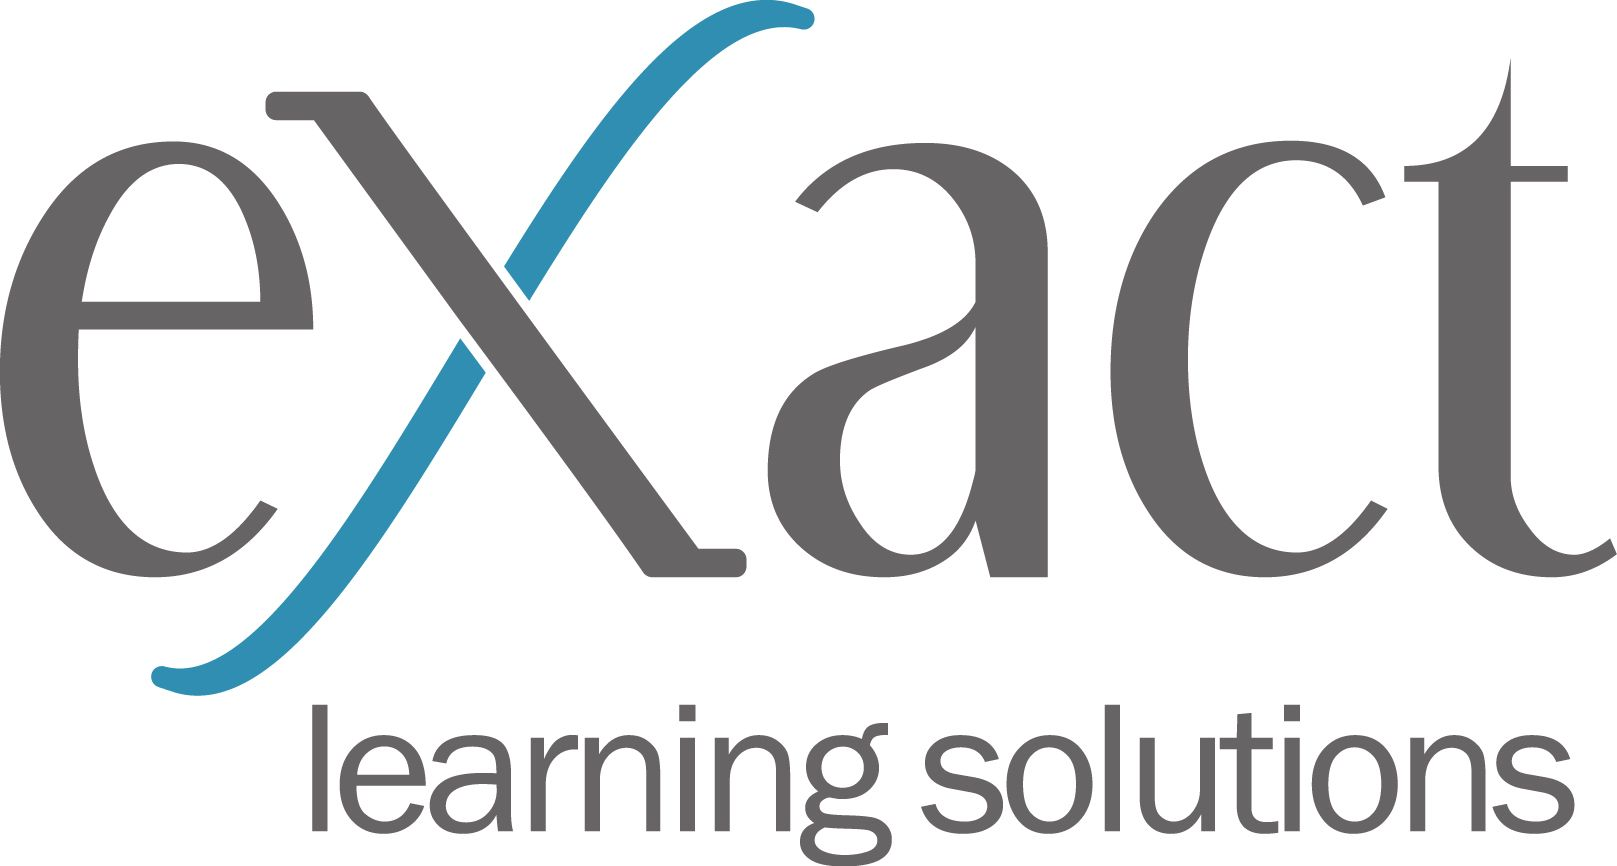 eXact learning solutions' logo.